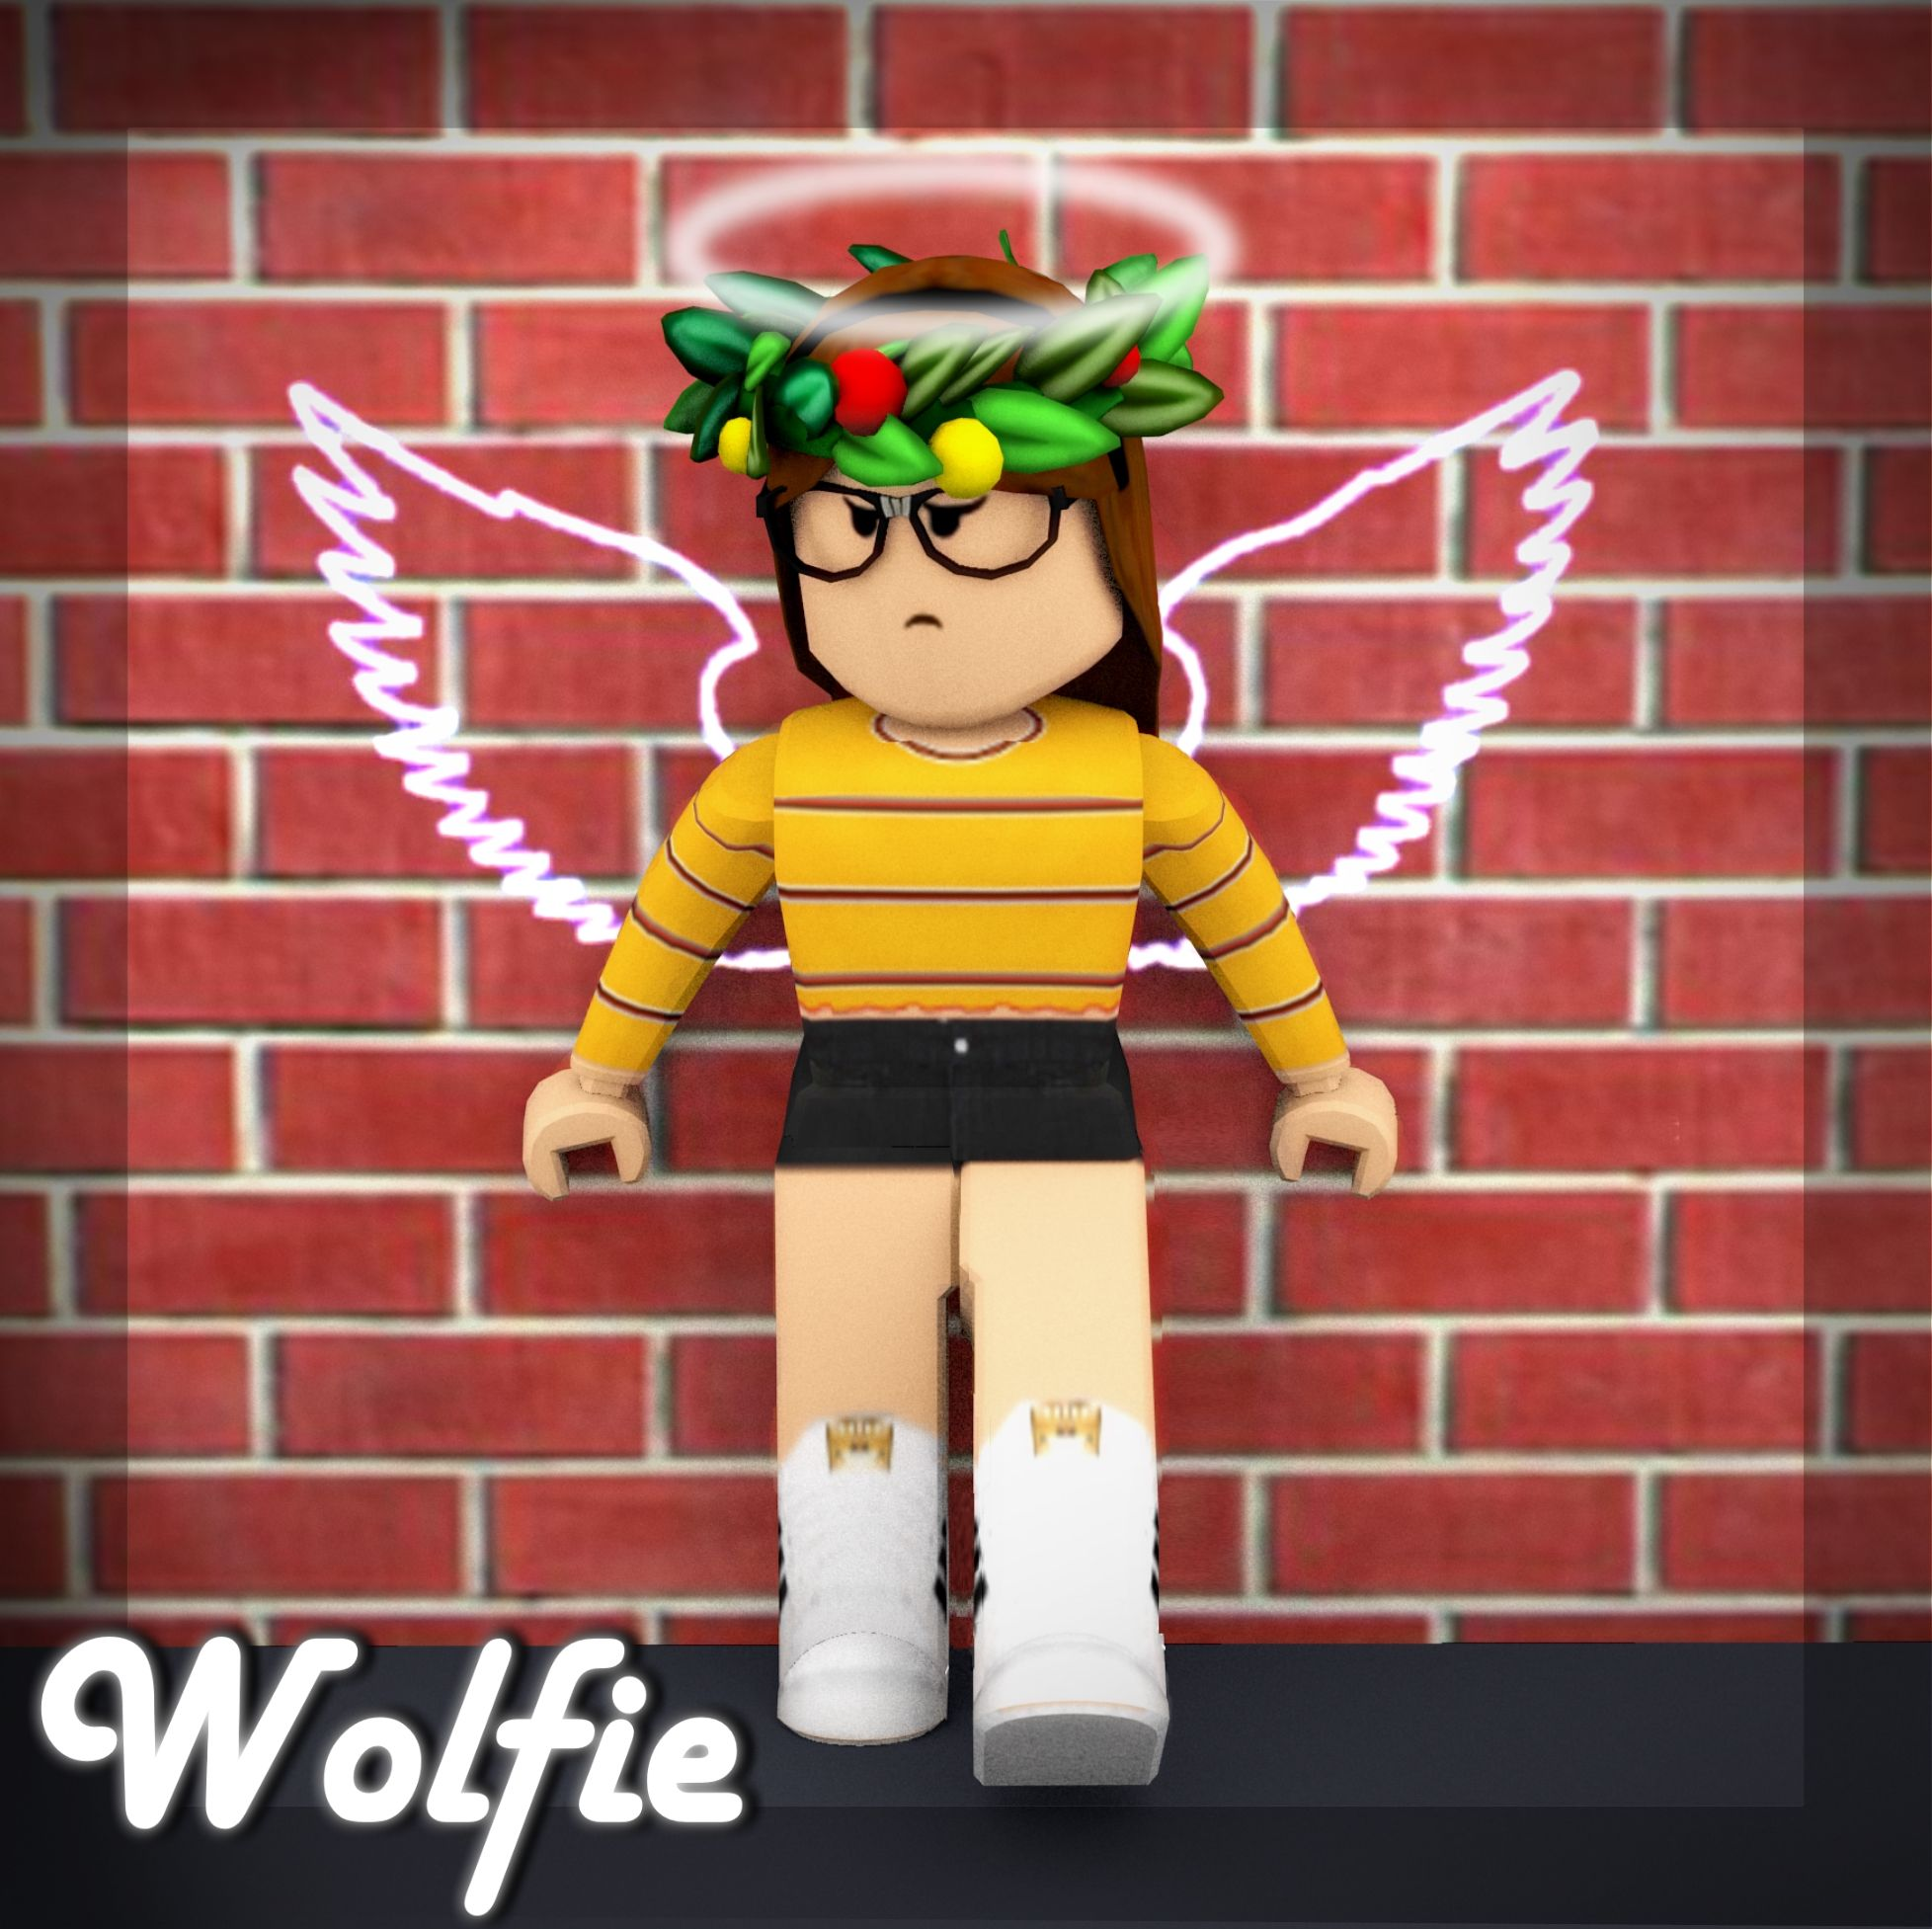 Aesthetic Roblox Girl Wallpaper